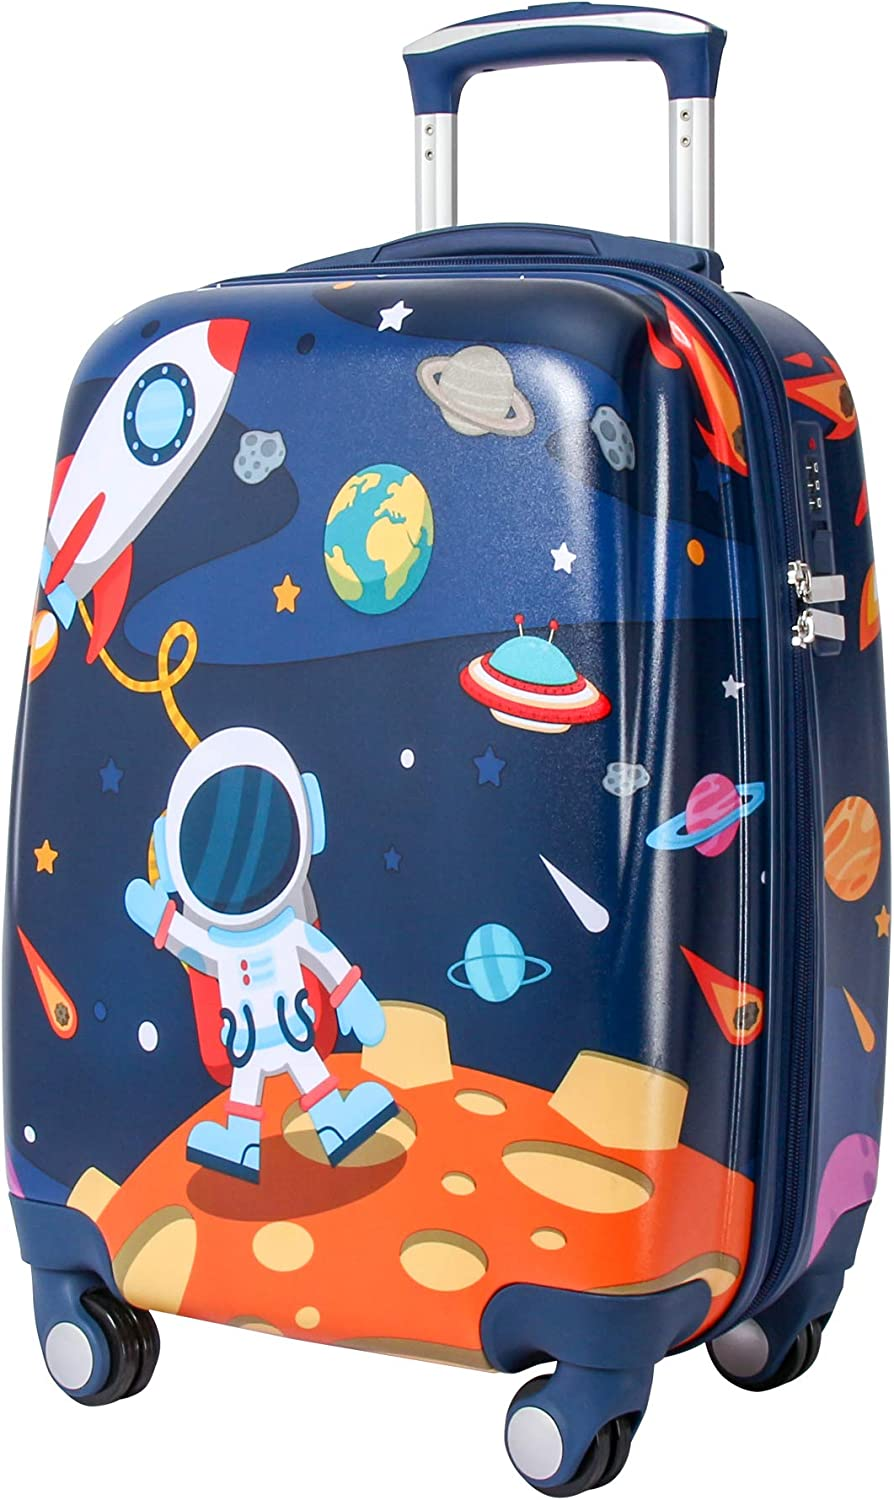 """Four Wheel Suitcase for Boys Aerolite Child Light Rolling Luggage Blue Outspace Pattern 18"""""""